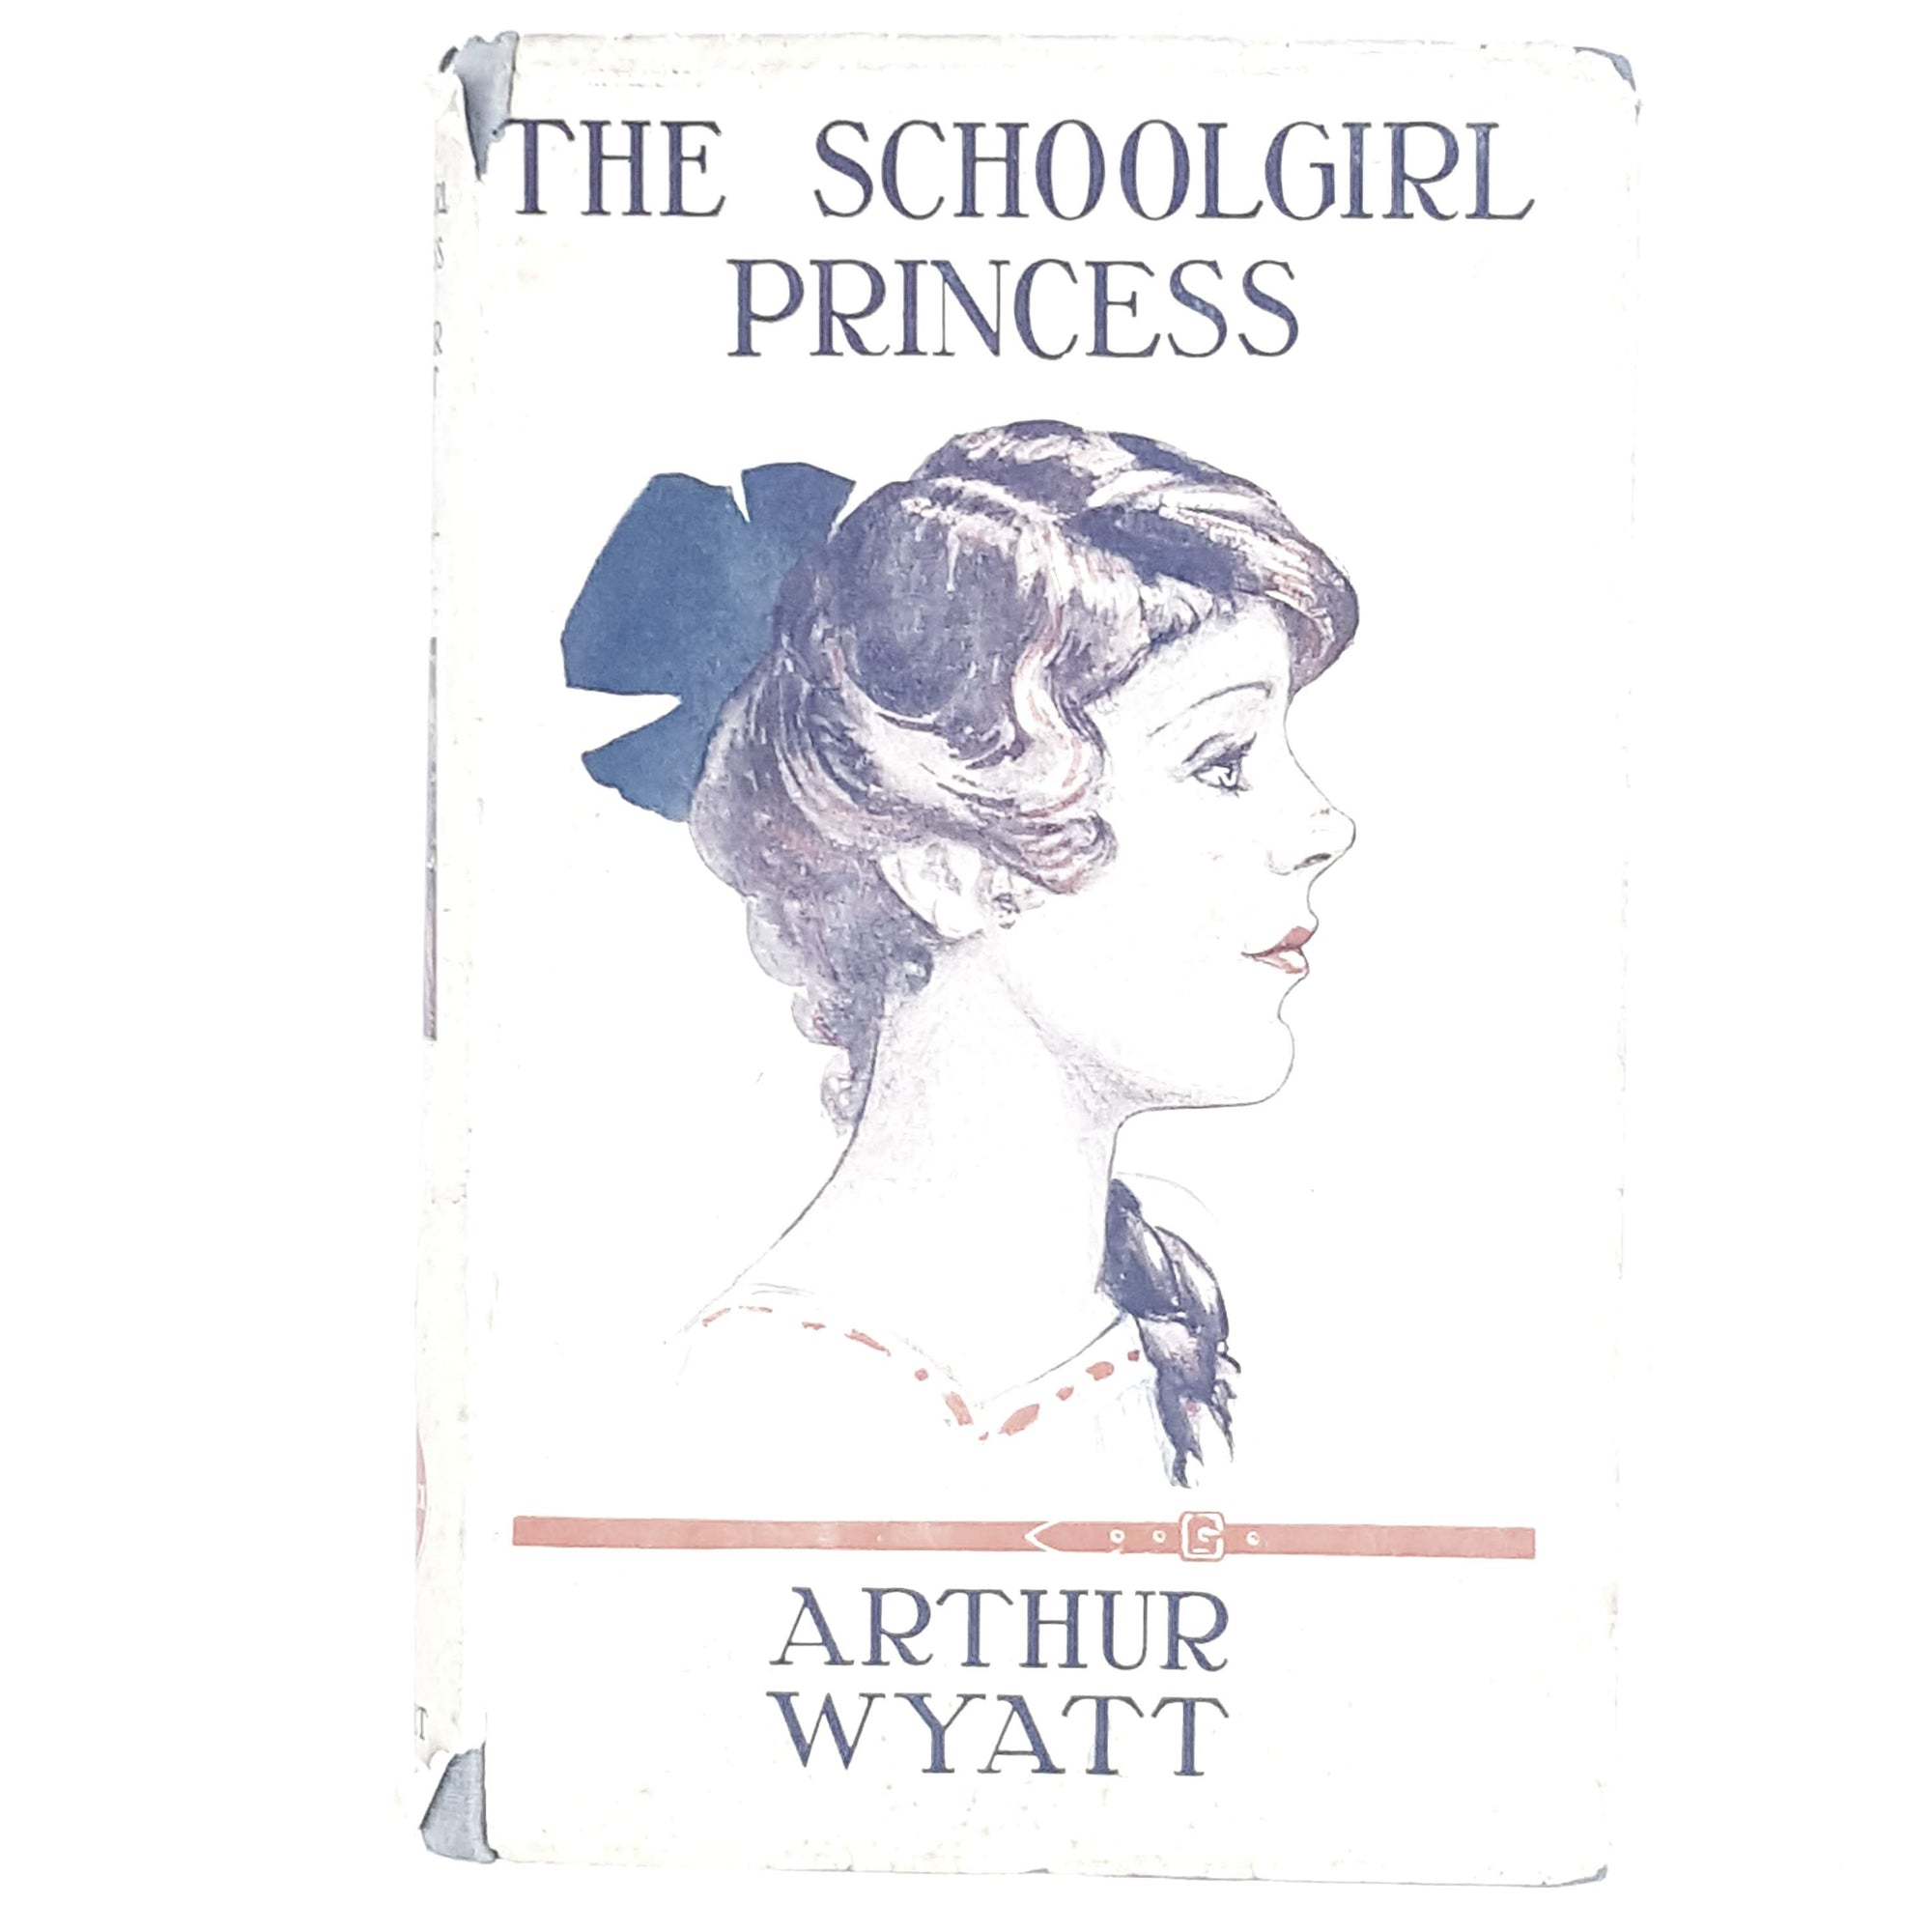 Vintage Cover: The Schoolgirl Princess by Arthur Wyatt